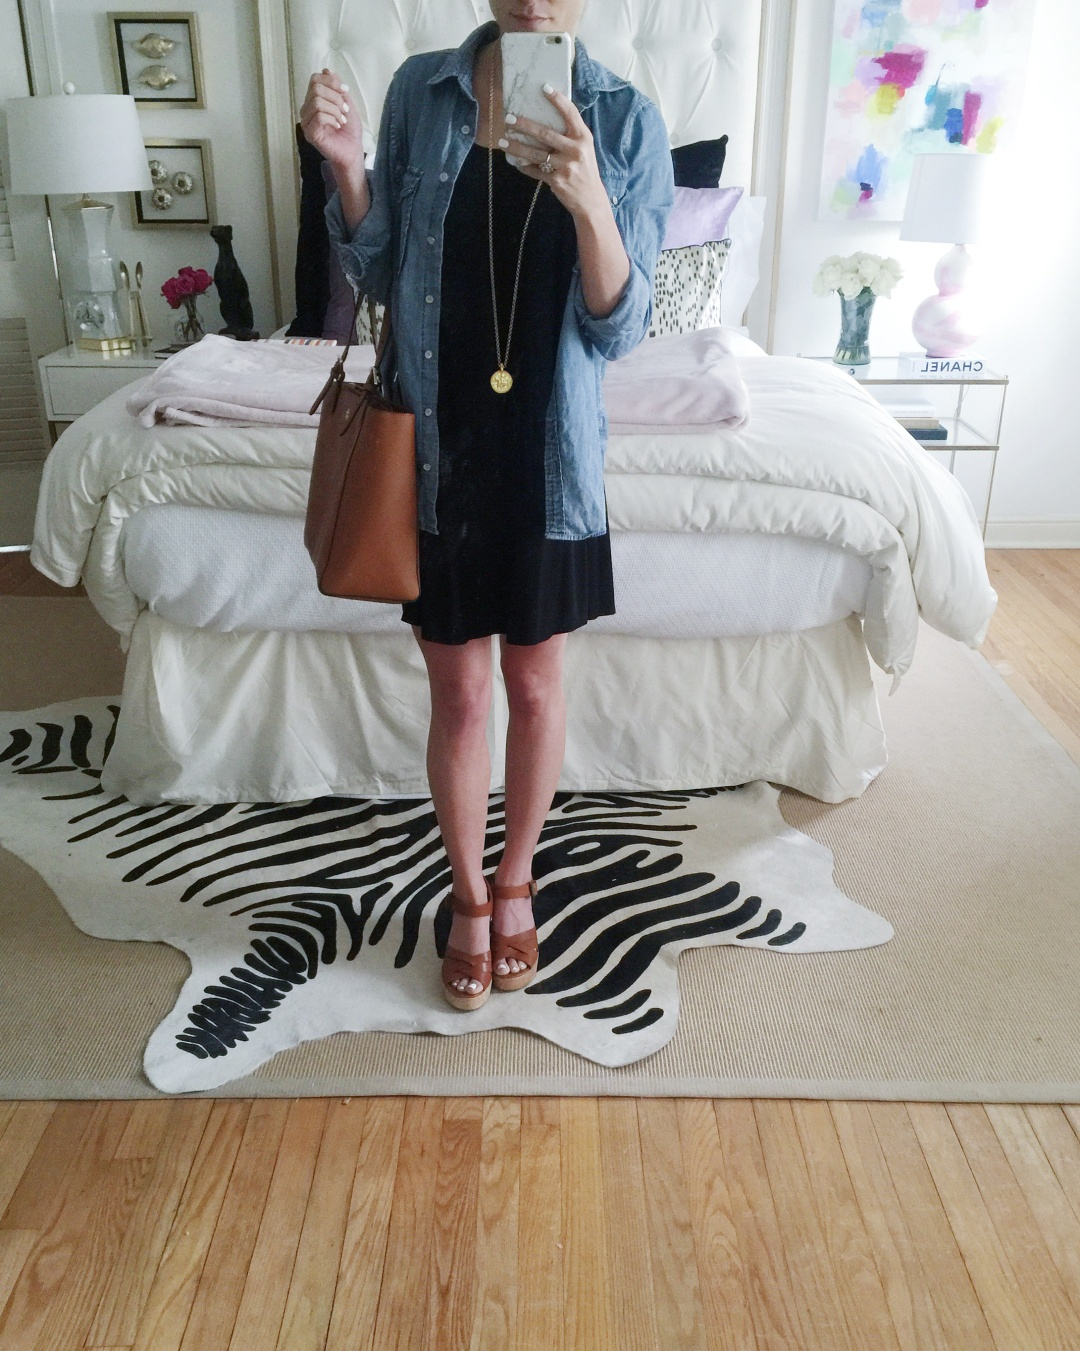 @brightonkeller mirror selfie wearing black mini swing dress with chambray worn as a cardigan and gold pendant necklace